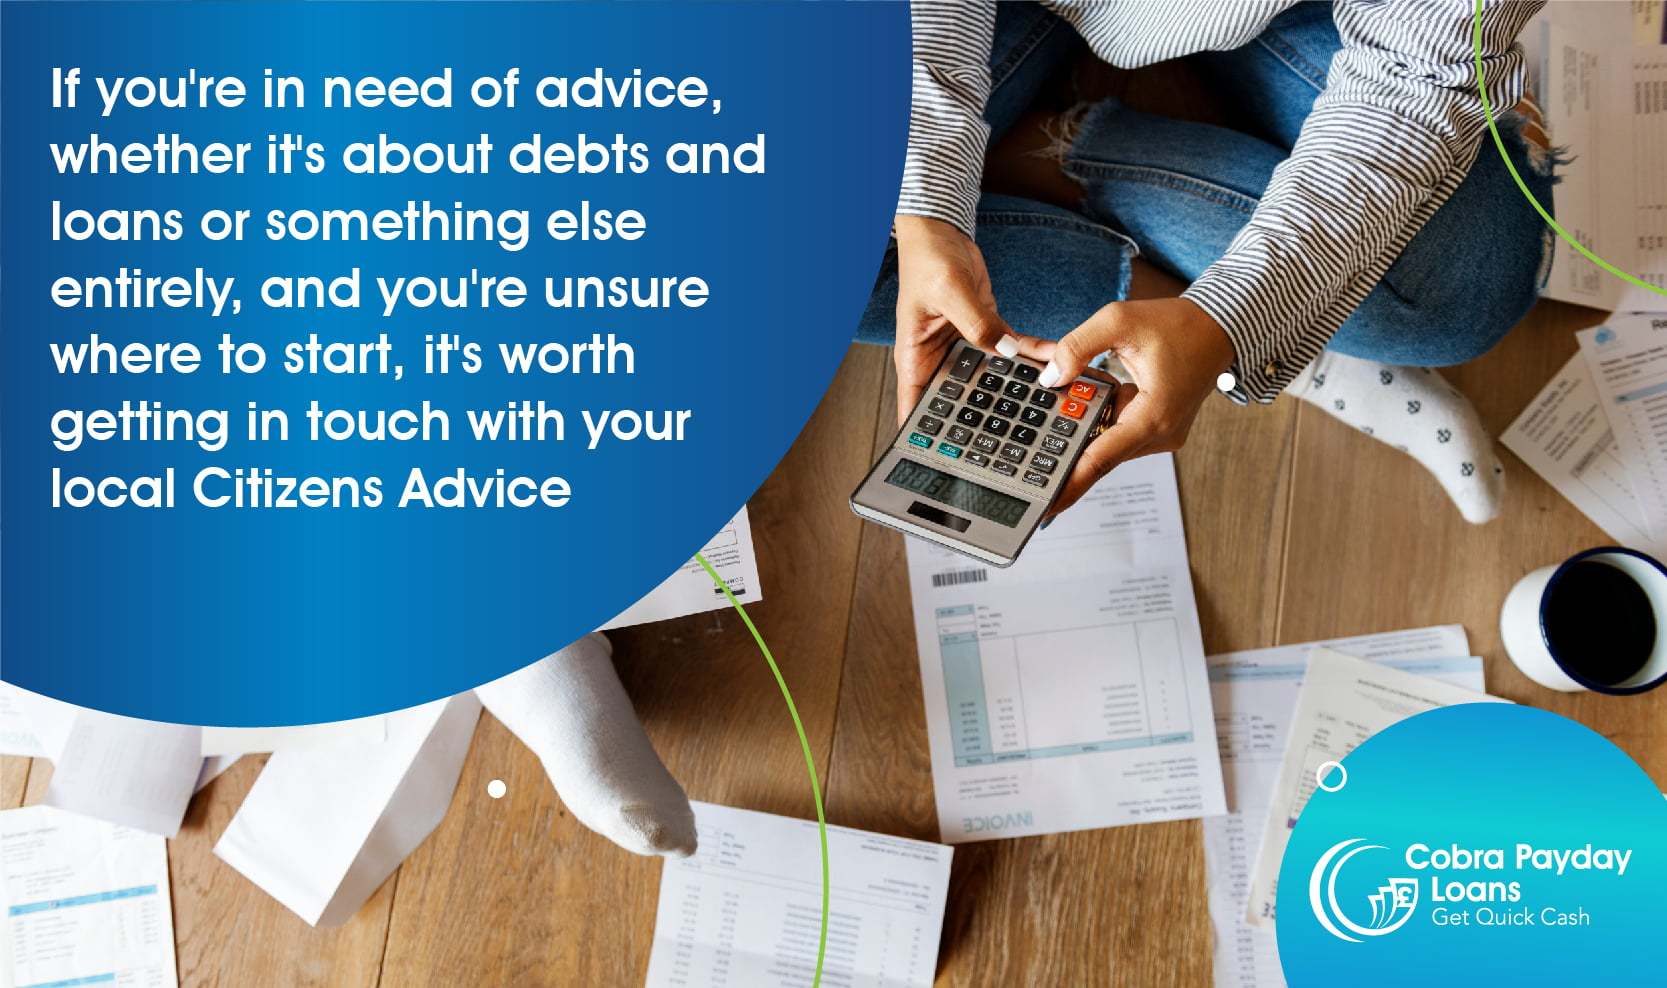 It's worth getting in touch with your local Citizens Advice